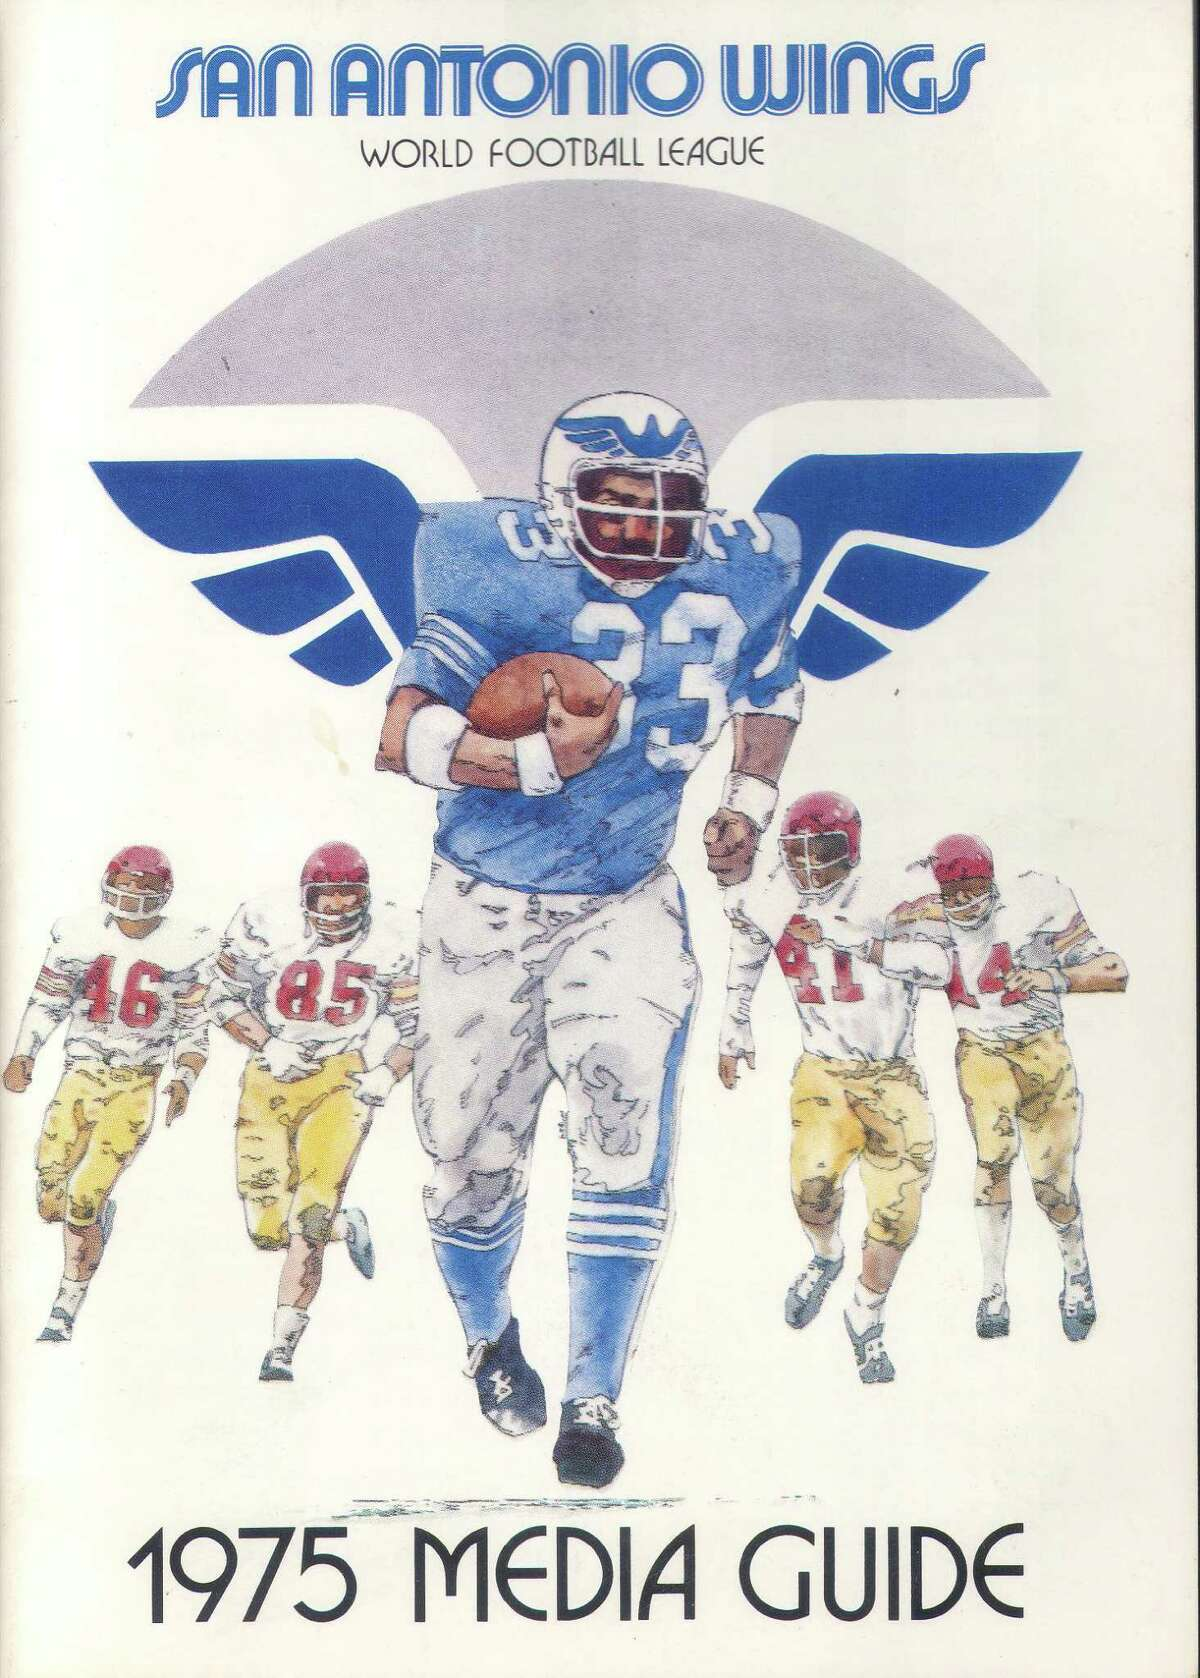 The 1975 media guide for the San Antonio Wings of the World Football League.